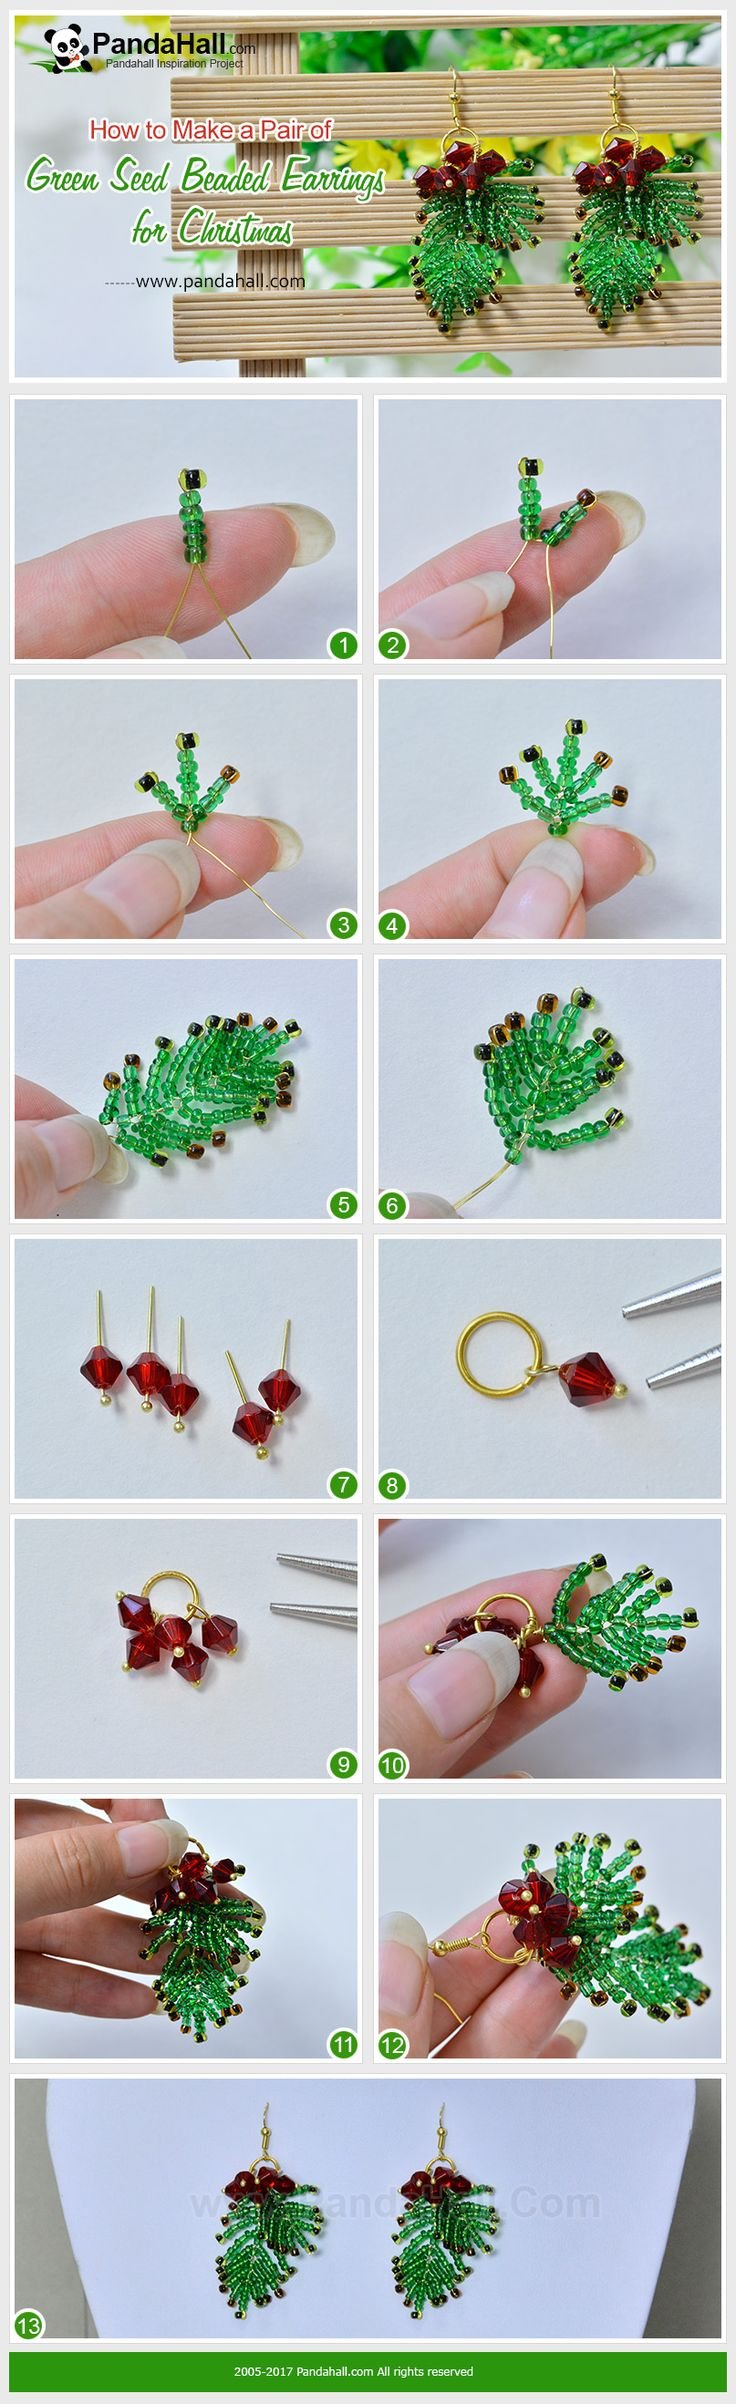 PandaHall Christmas Craft-----Green Seed Beaded Earrings for Christmas Are you looking for a pair of earrings to be worn during Christmas? Maybe you can try today's green seed bead earrings. By weaving seed beads in a unique way, we can create a seed bead